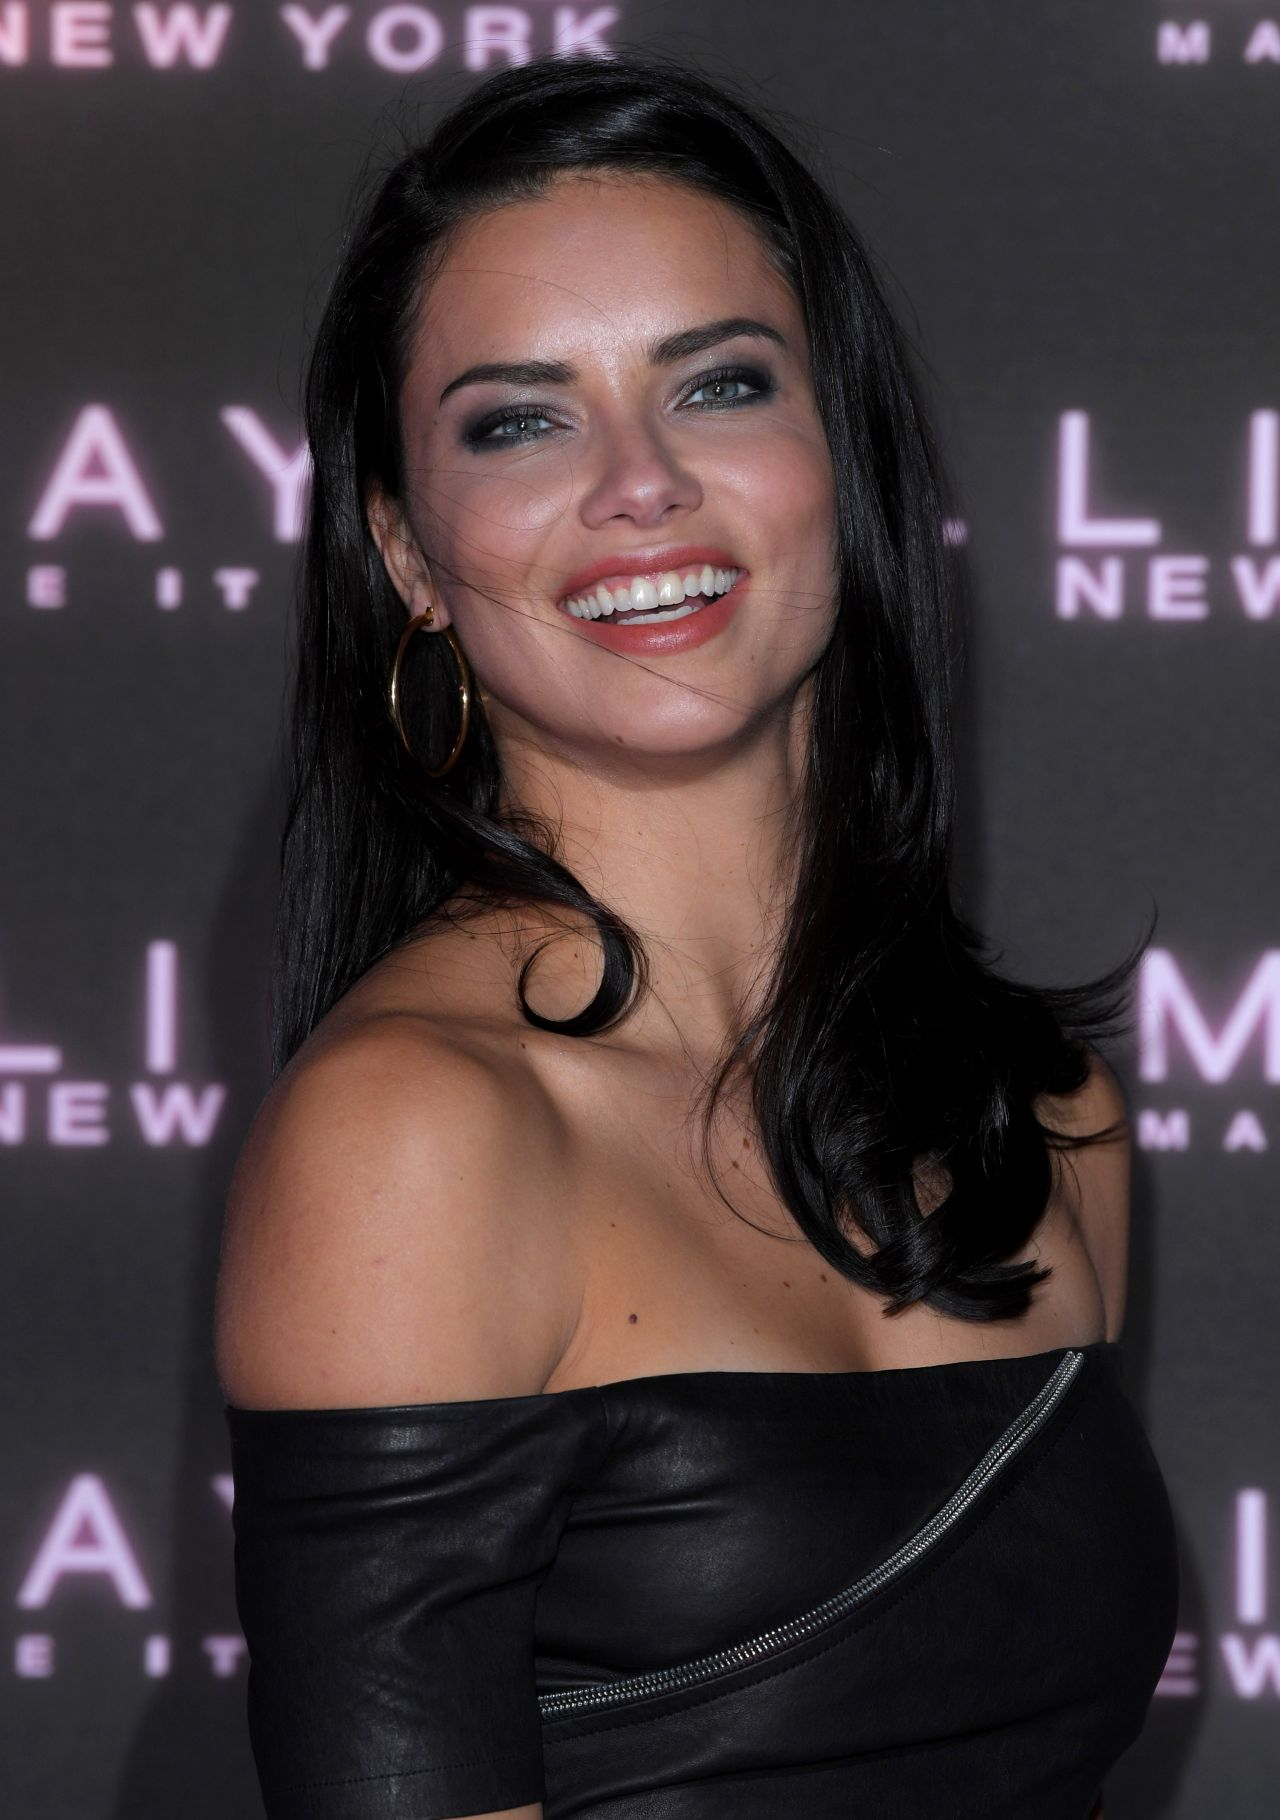 All About Hollywood Stars: Adriana Lima Biography Pictures